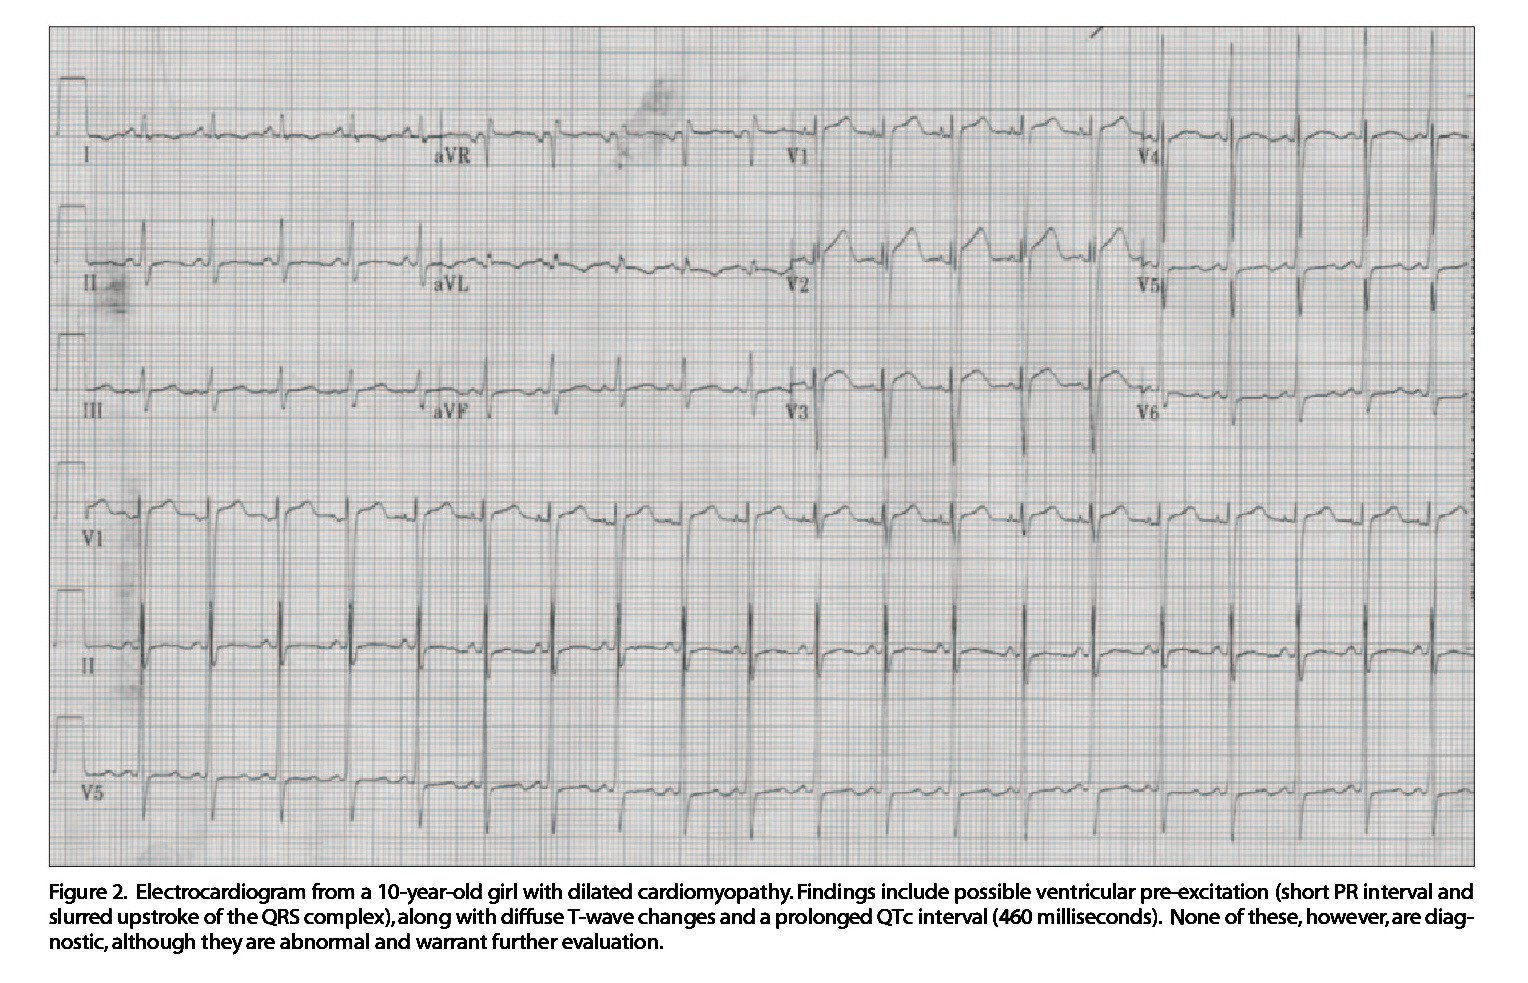 Figure 2. Electrocardiogram from a 10-year-old girl with dilated cardiomyopathy. Findings include possible ventricular pre-excitation (short PR interval and slurred upstroke of the QRS complex),along with diffuse T-wave changes and a prolonged QTc interval (460 milliseconds). None of these, however,are diagnostic, although they are abnormal and warrant further evaluation.